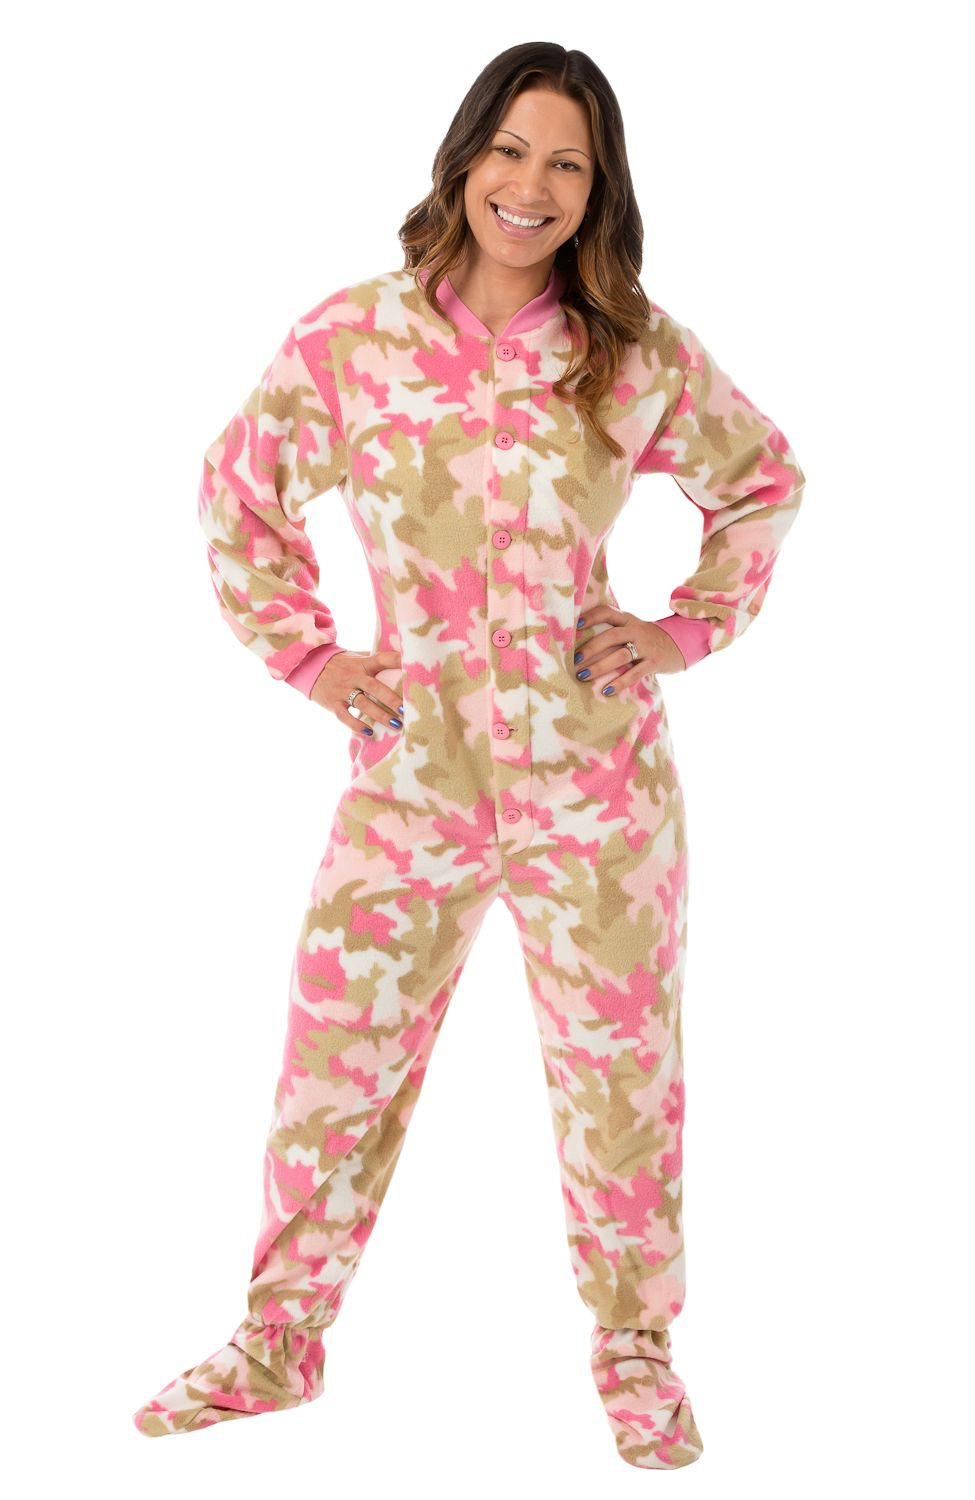 pink-polar-fleece-footed-pajamas | Footie Pajamas | Pinterest ...